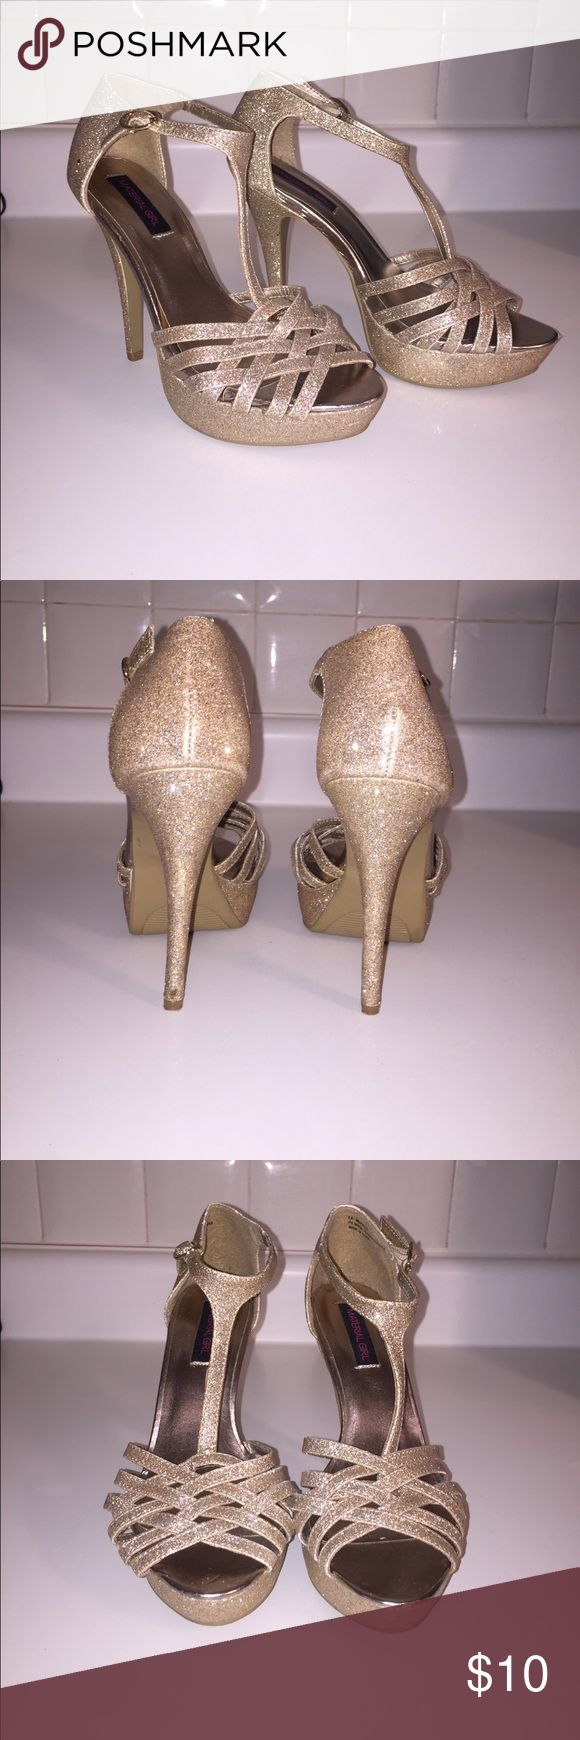 """Gold glitter heels Material Girl gold glitter heels with ~4.5"""" heel. In good condition. One stain spot that is featured above in pictures. Material Girl Shoes Heels"""